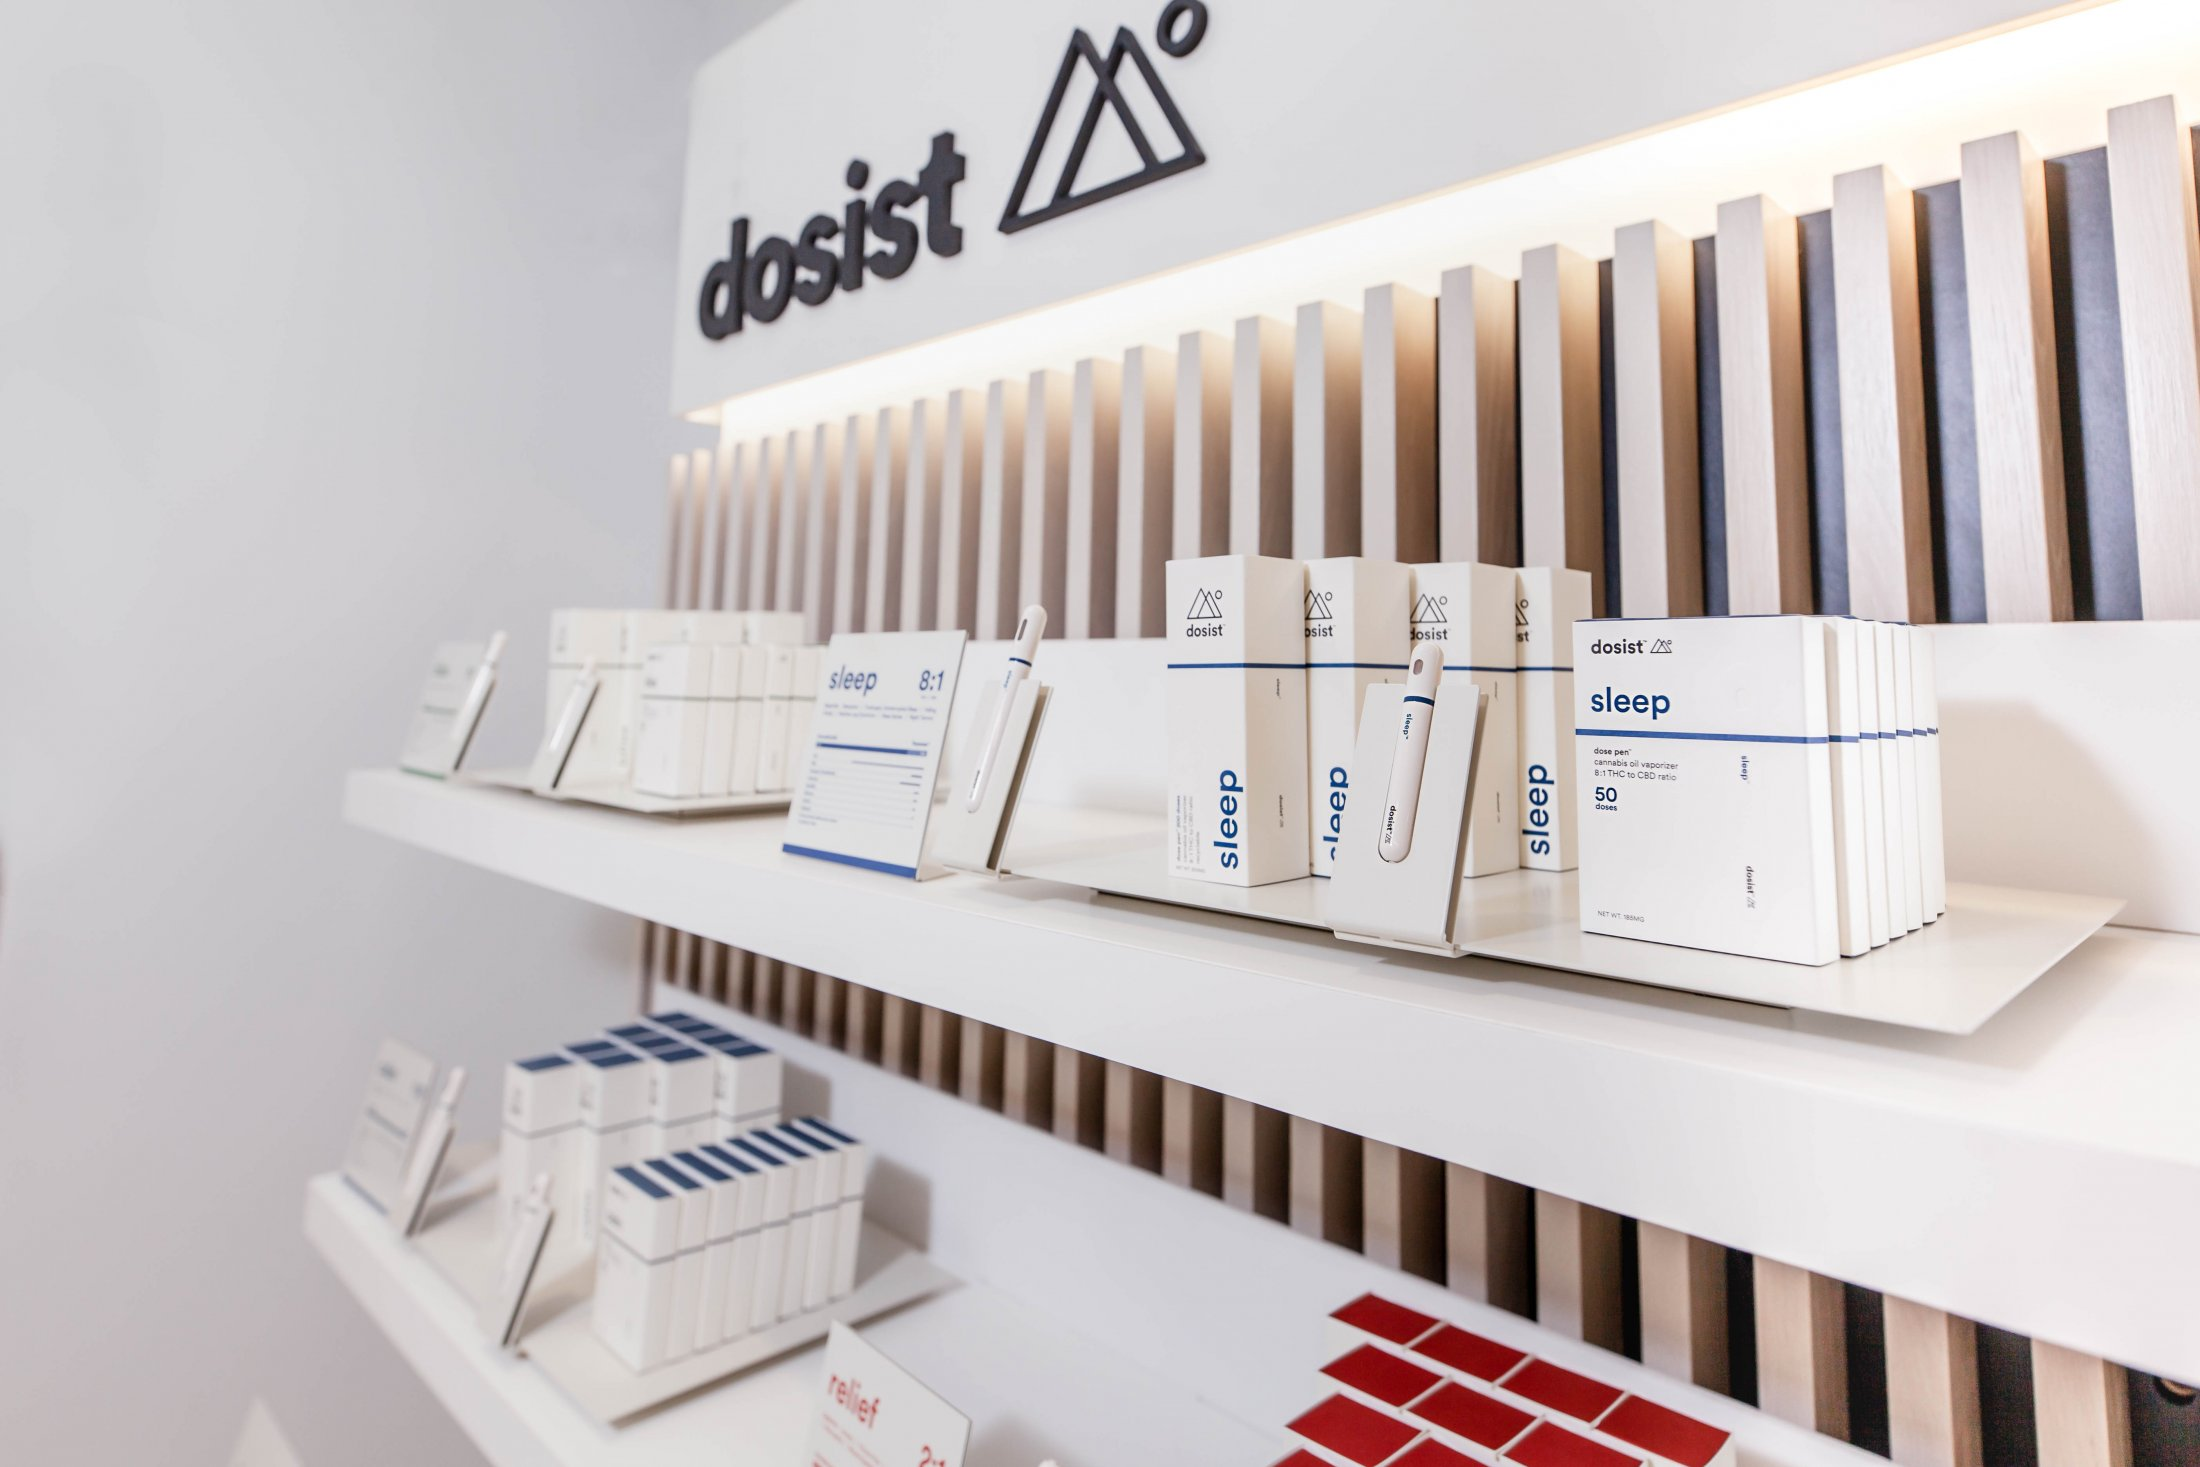 Dosist: Elevating the Dispensary Shop-in-Shop